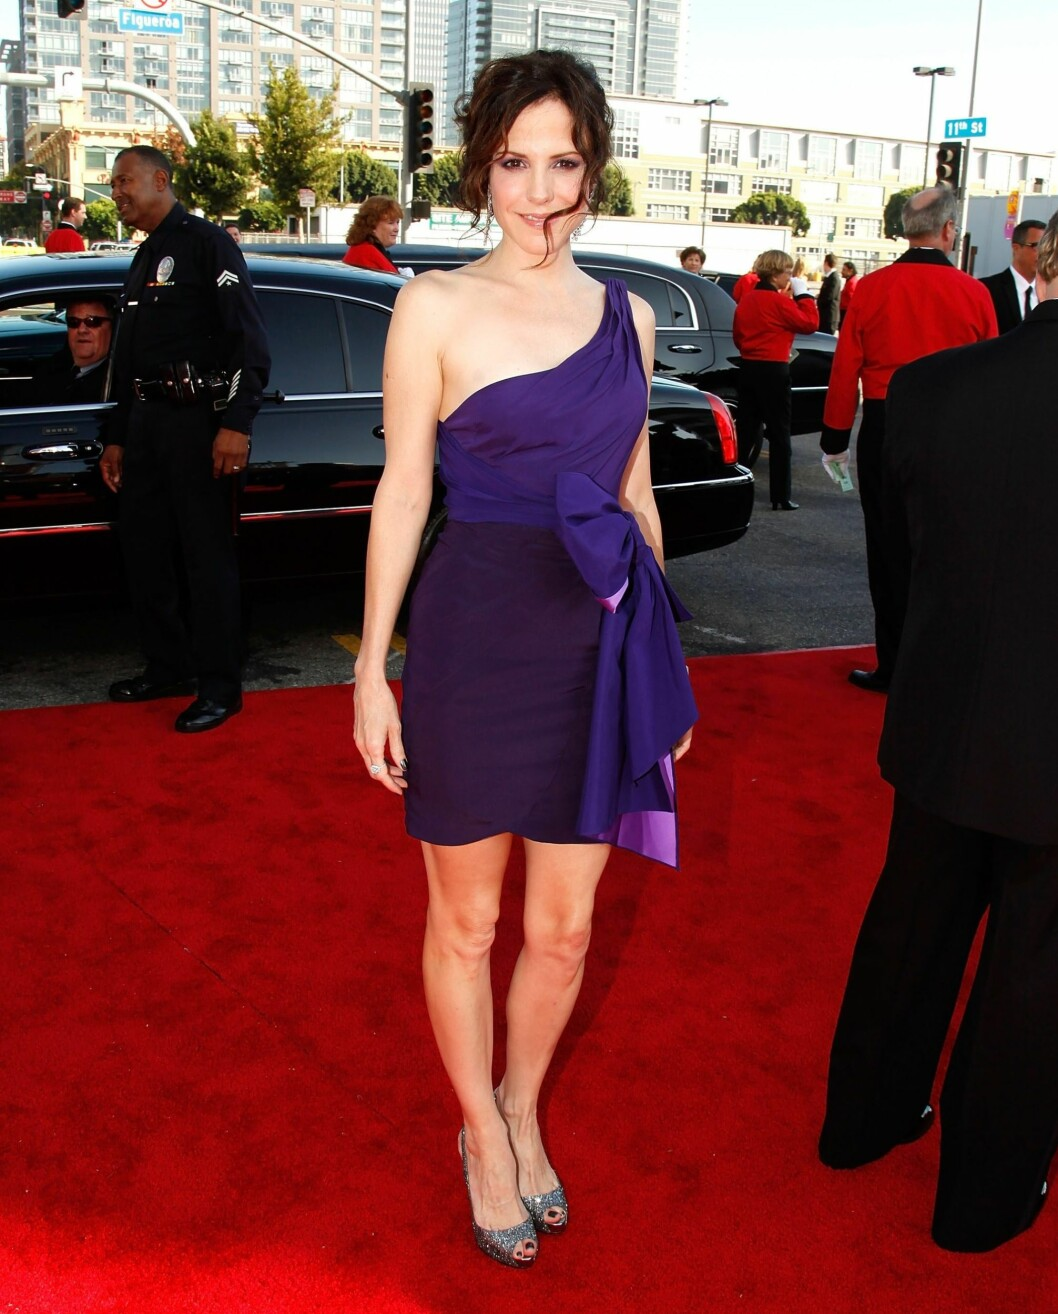 Skuespiller Mary-Louise Parker i en kort asymmetrisk kjole fra Zac Posen. Foto: All Over Press